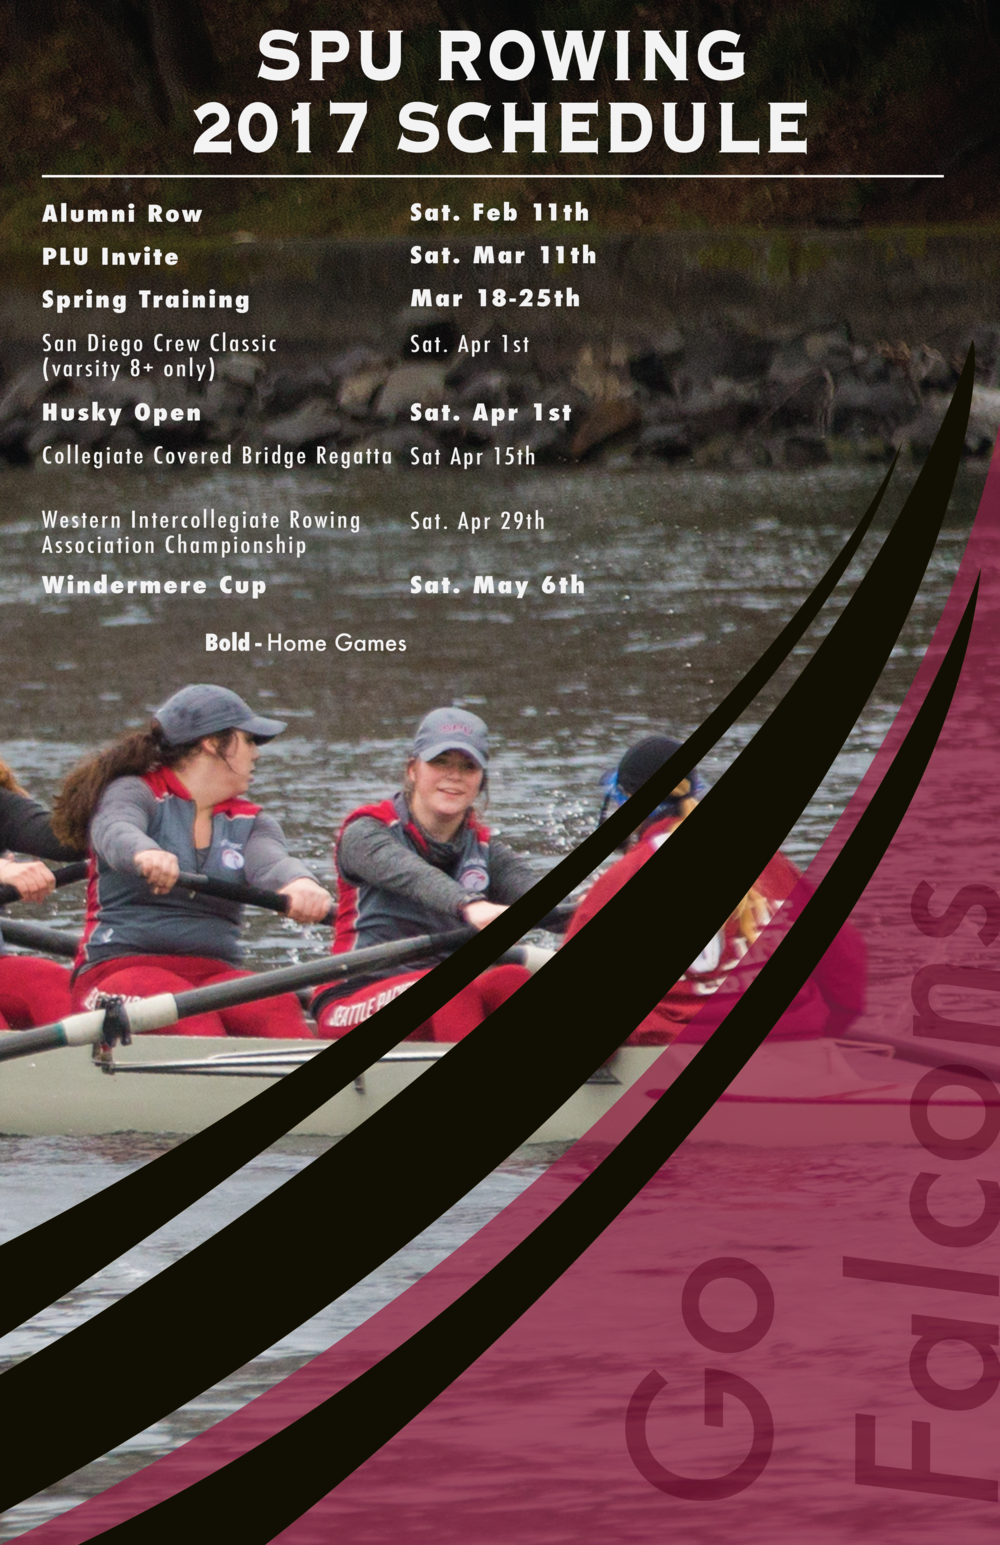 SPU Rowing 2017 Schedule-01.png